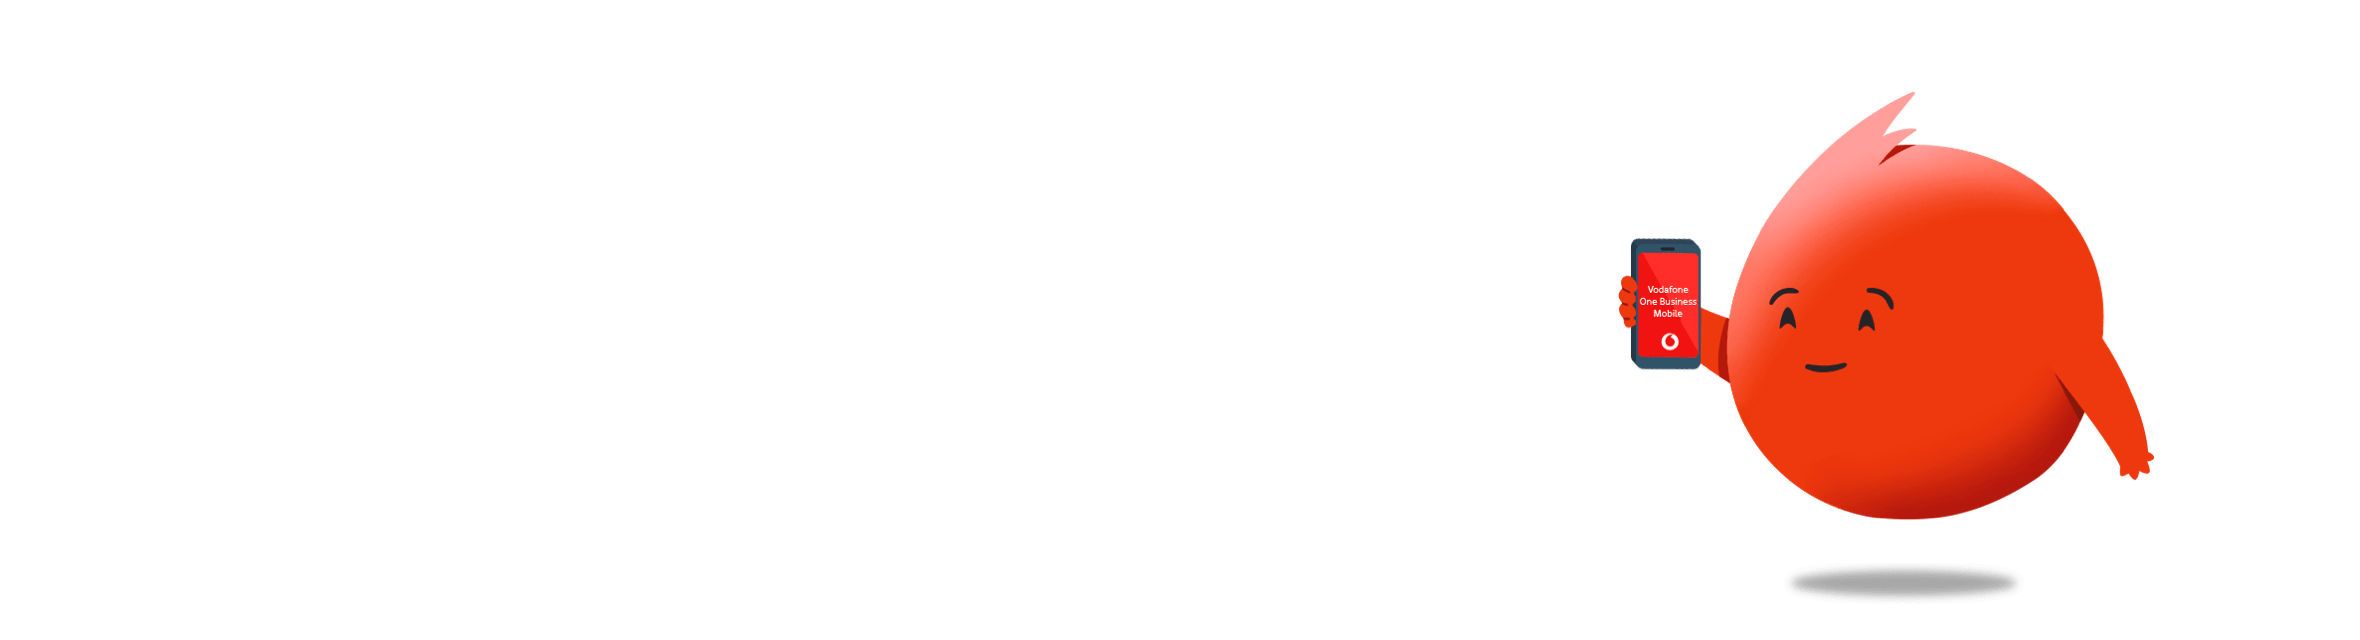 Vodafone One Business Mobile Hello Banner